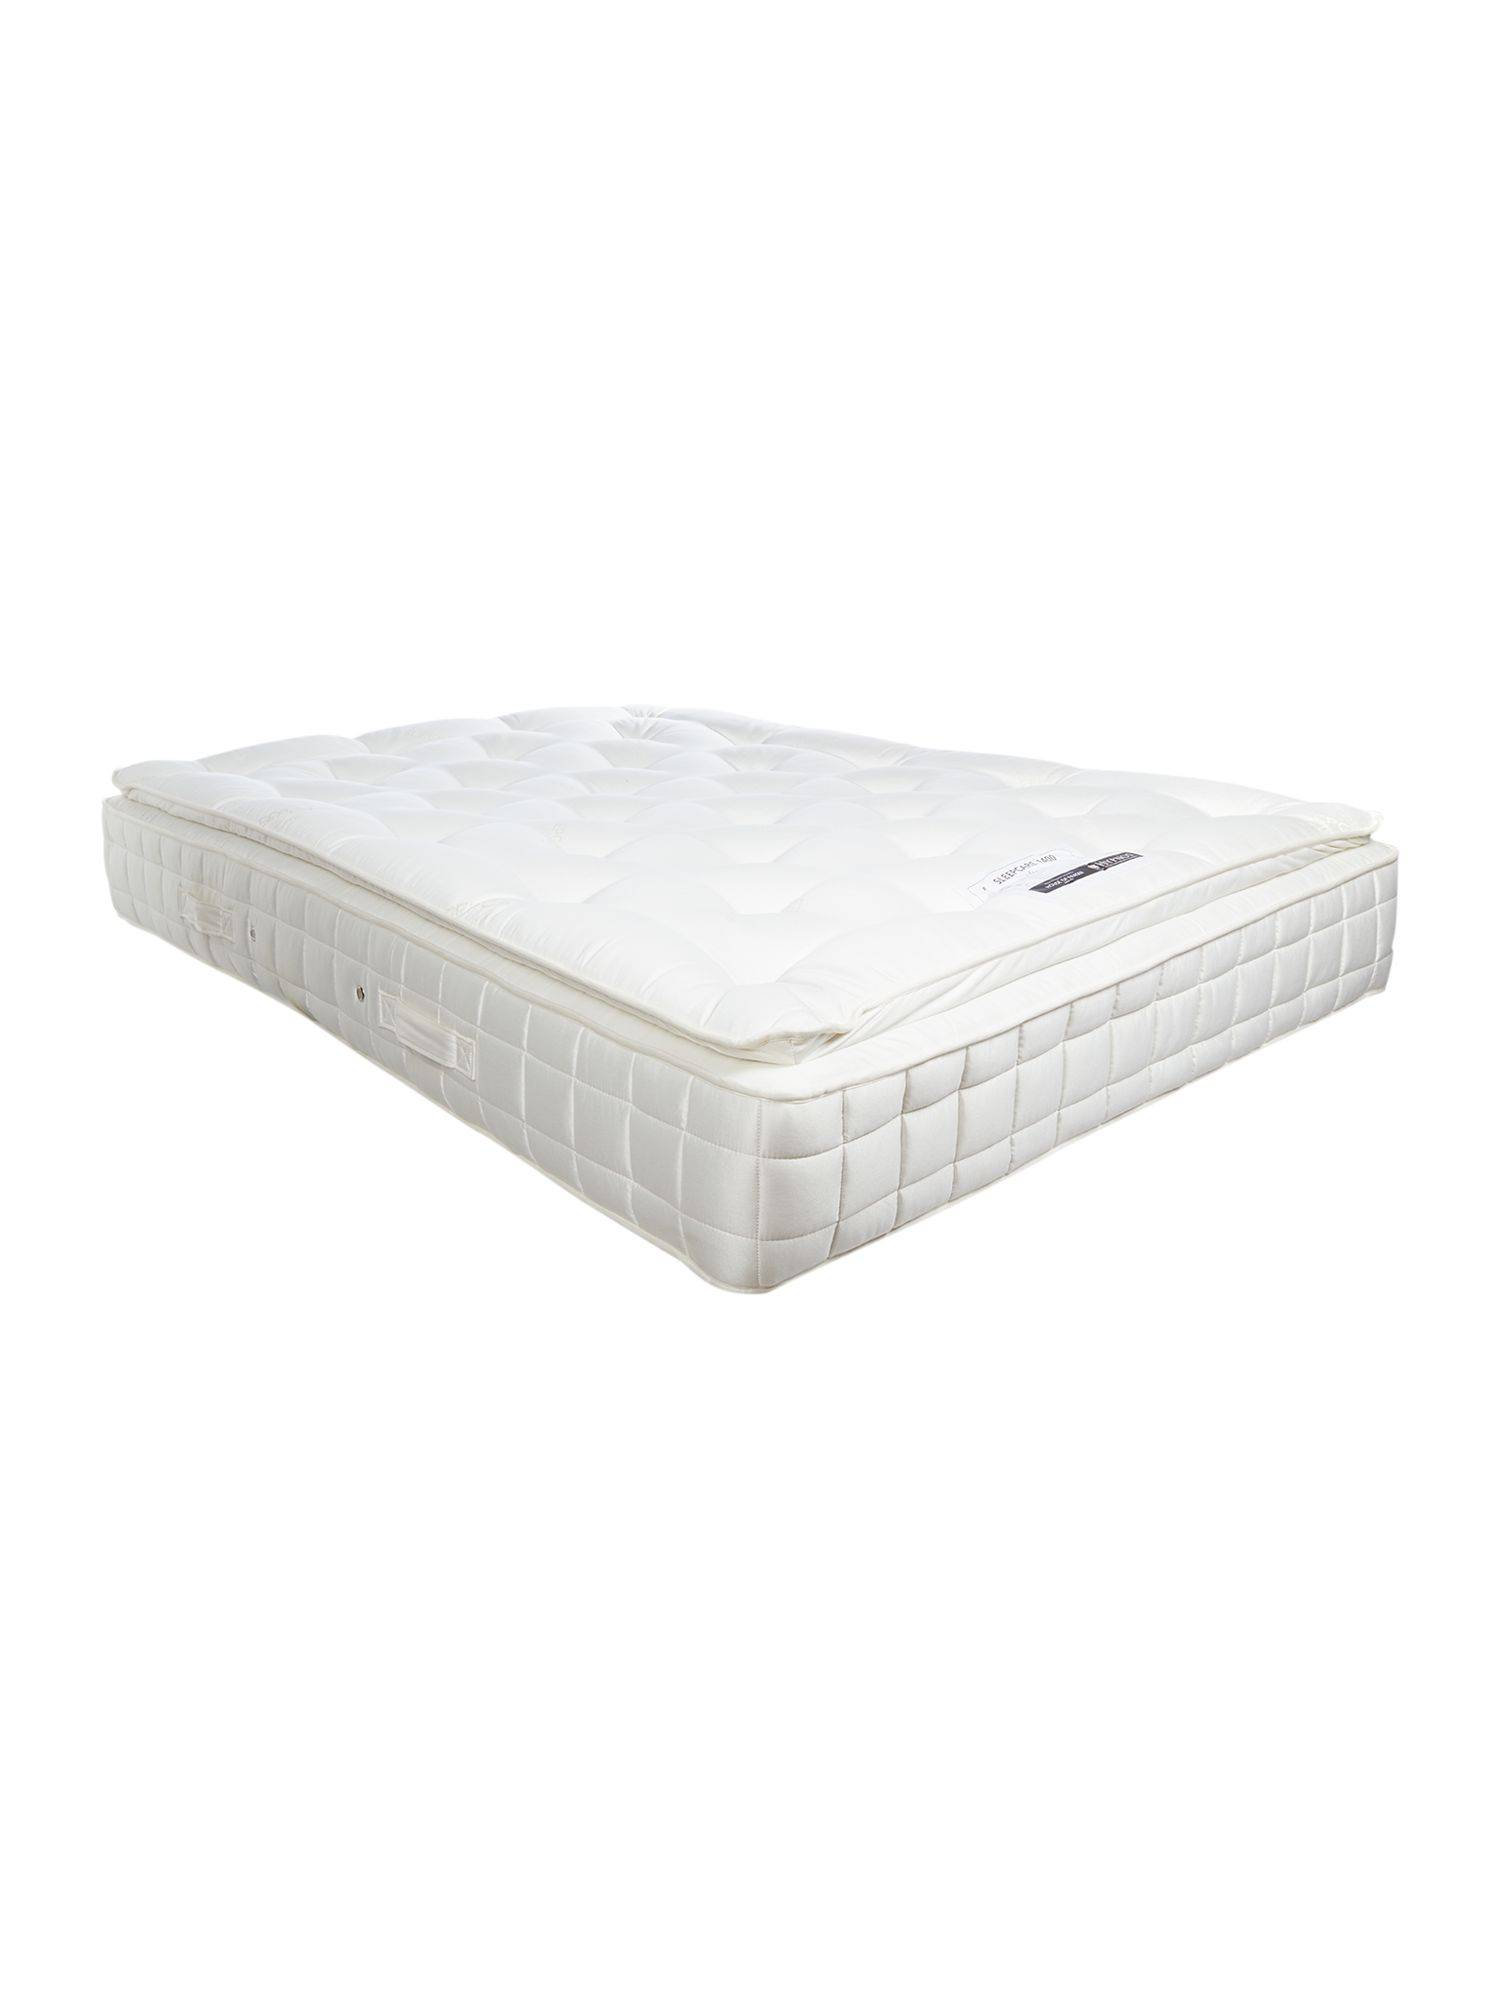 LINEA Home by Hypnos Sleepcare 1400 king pillow top mattress soft